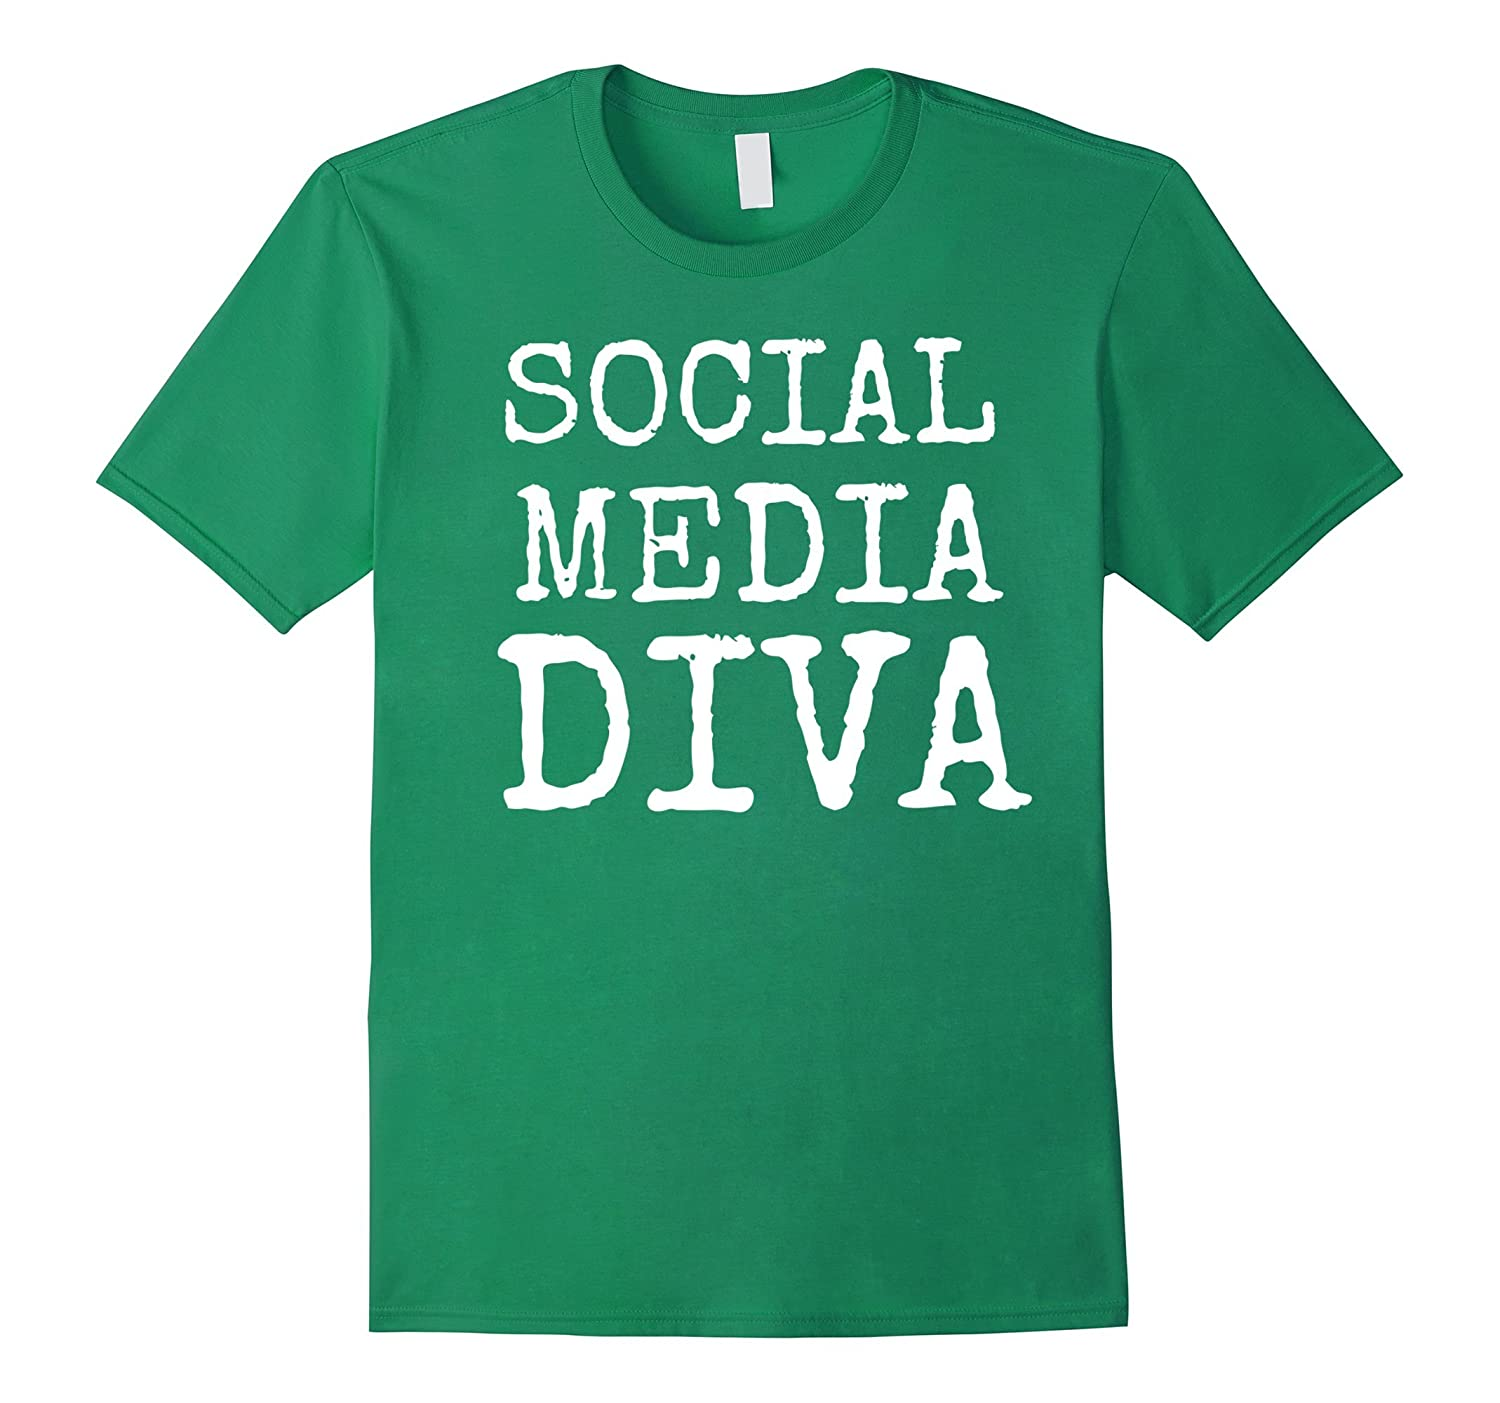 SOCIAL MEDIA DIVA FUN SHIRT-PL